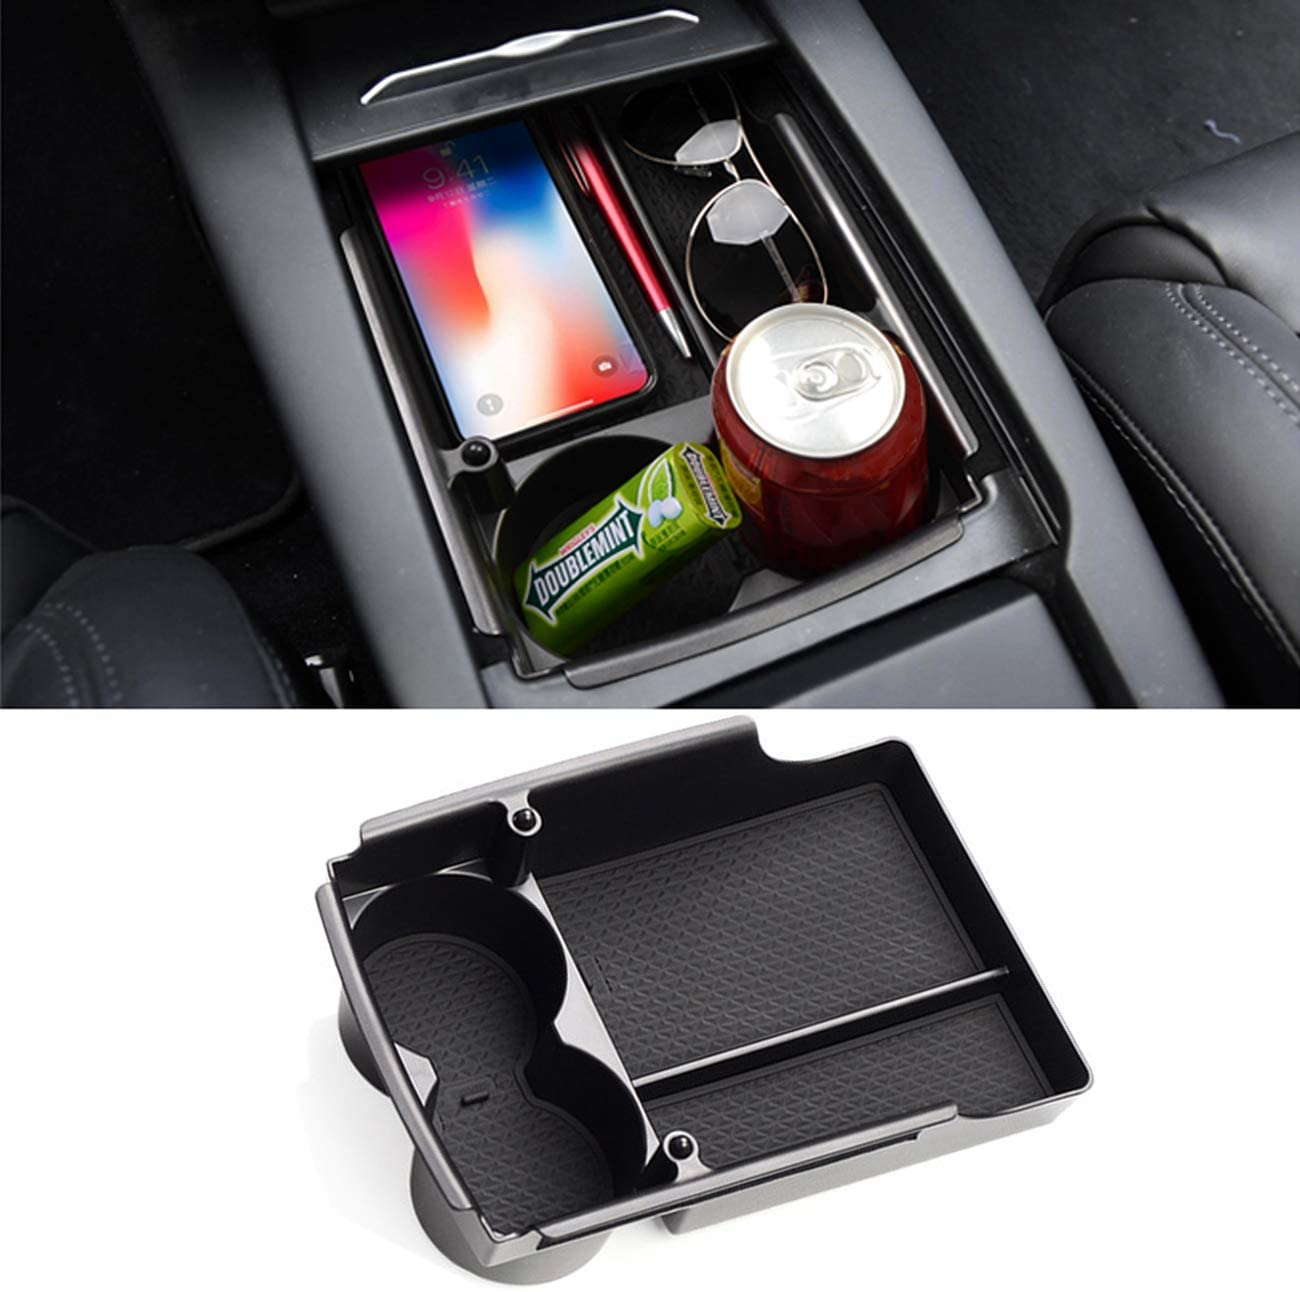 Jaronx for Tesla Model S/Model X Center Console Storage Box, Insert Organizer Tray+Cup Holder (Fit: Tesla Model S/Model X 2020 2019 2018 2017 2016)-Upgraded Tesla Model X/S Accessories